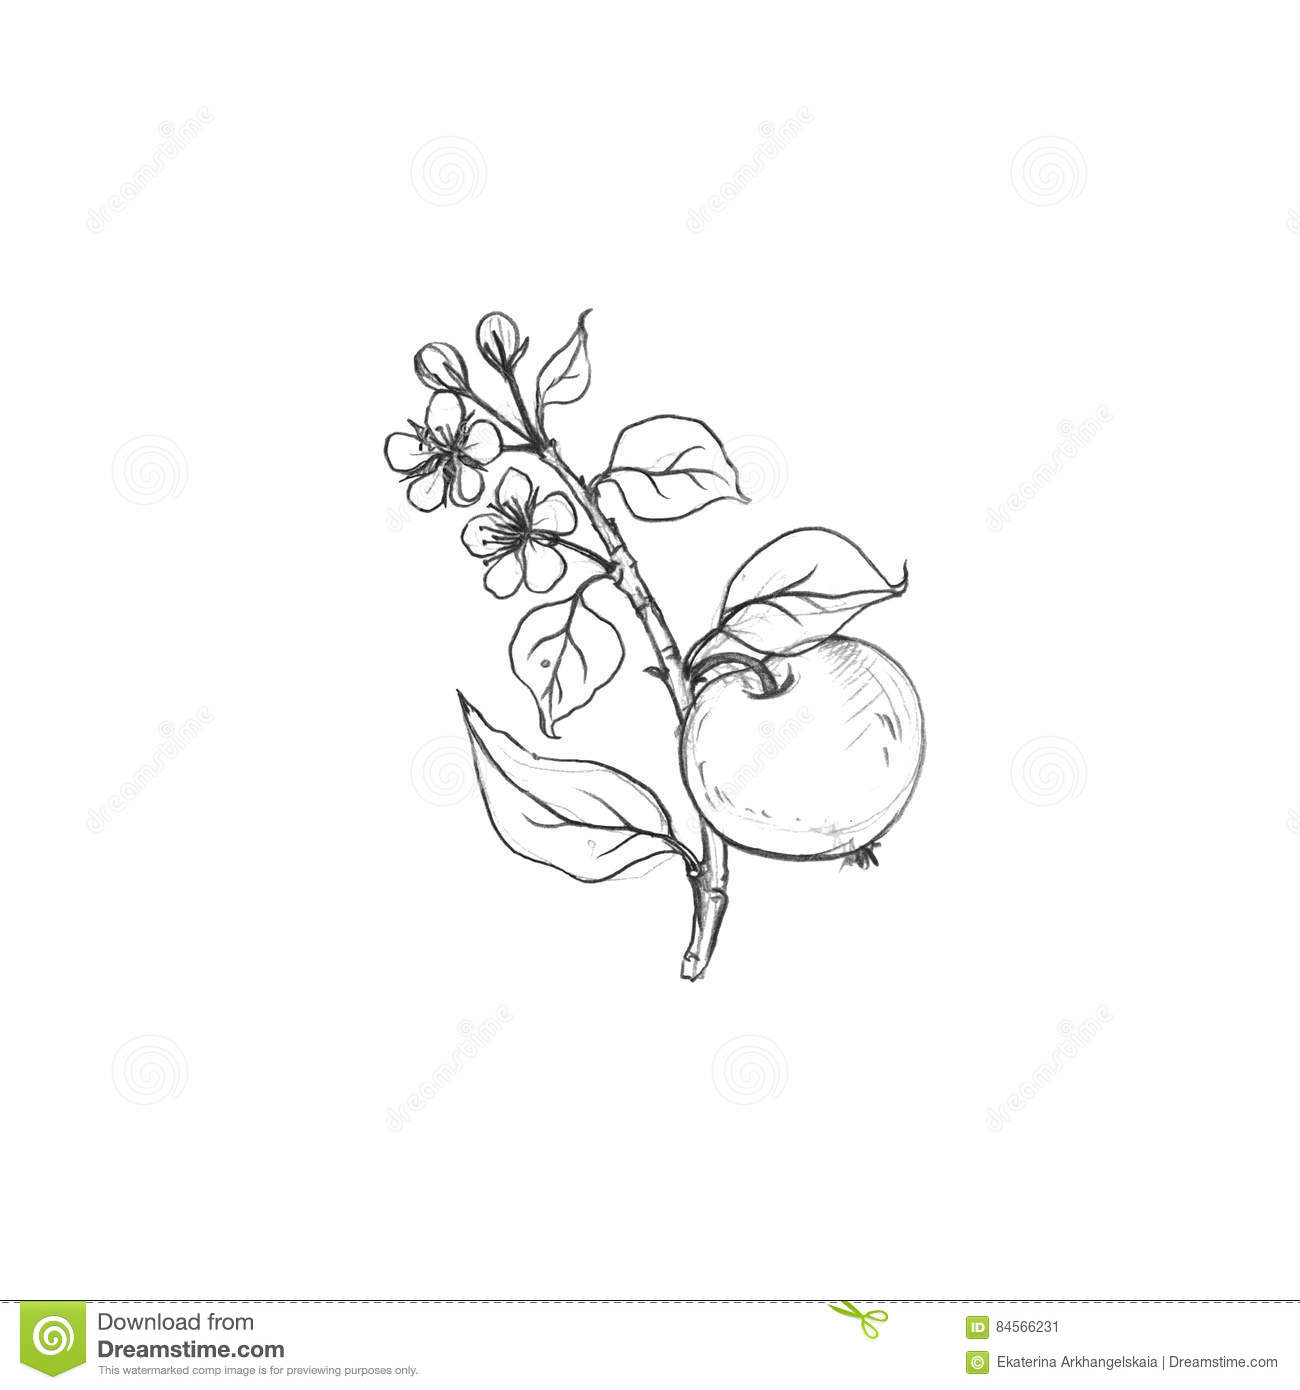 Apple tree branch with fruits leaves buds and flowers drawing by graphite pencilisolated hand drawn elements